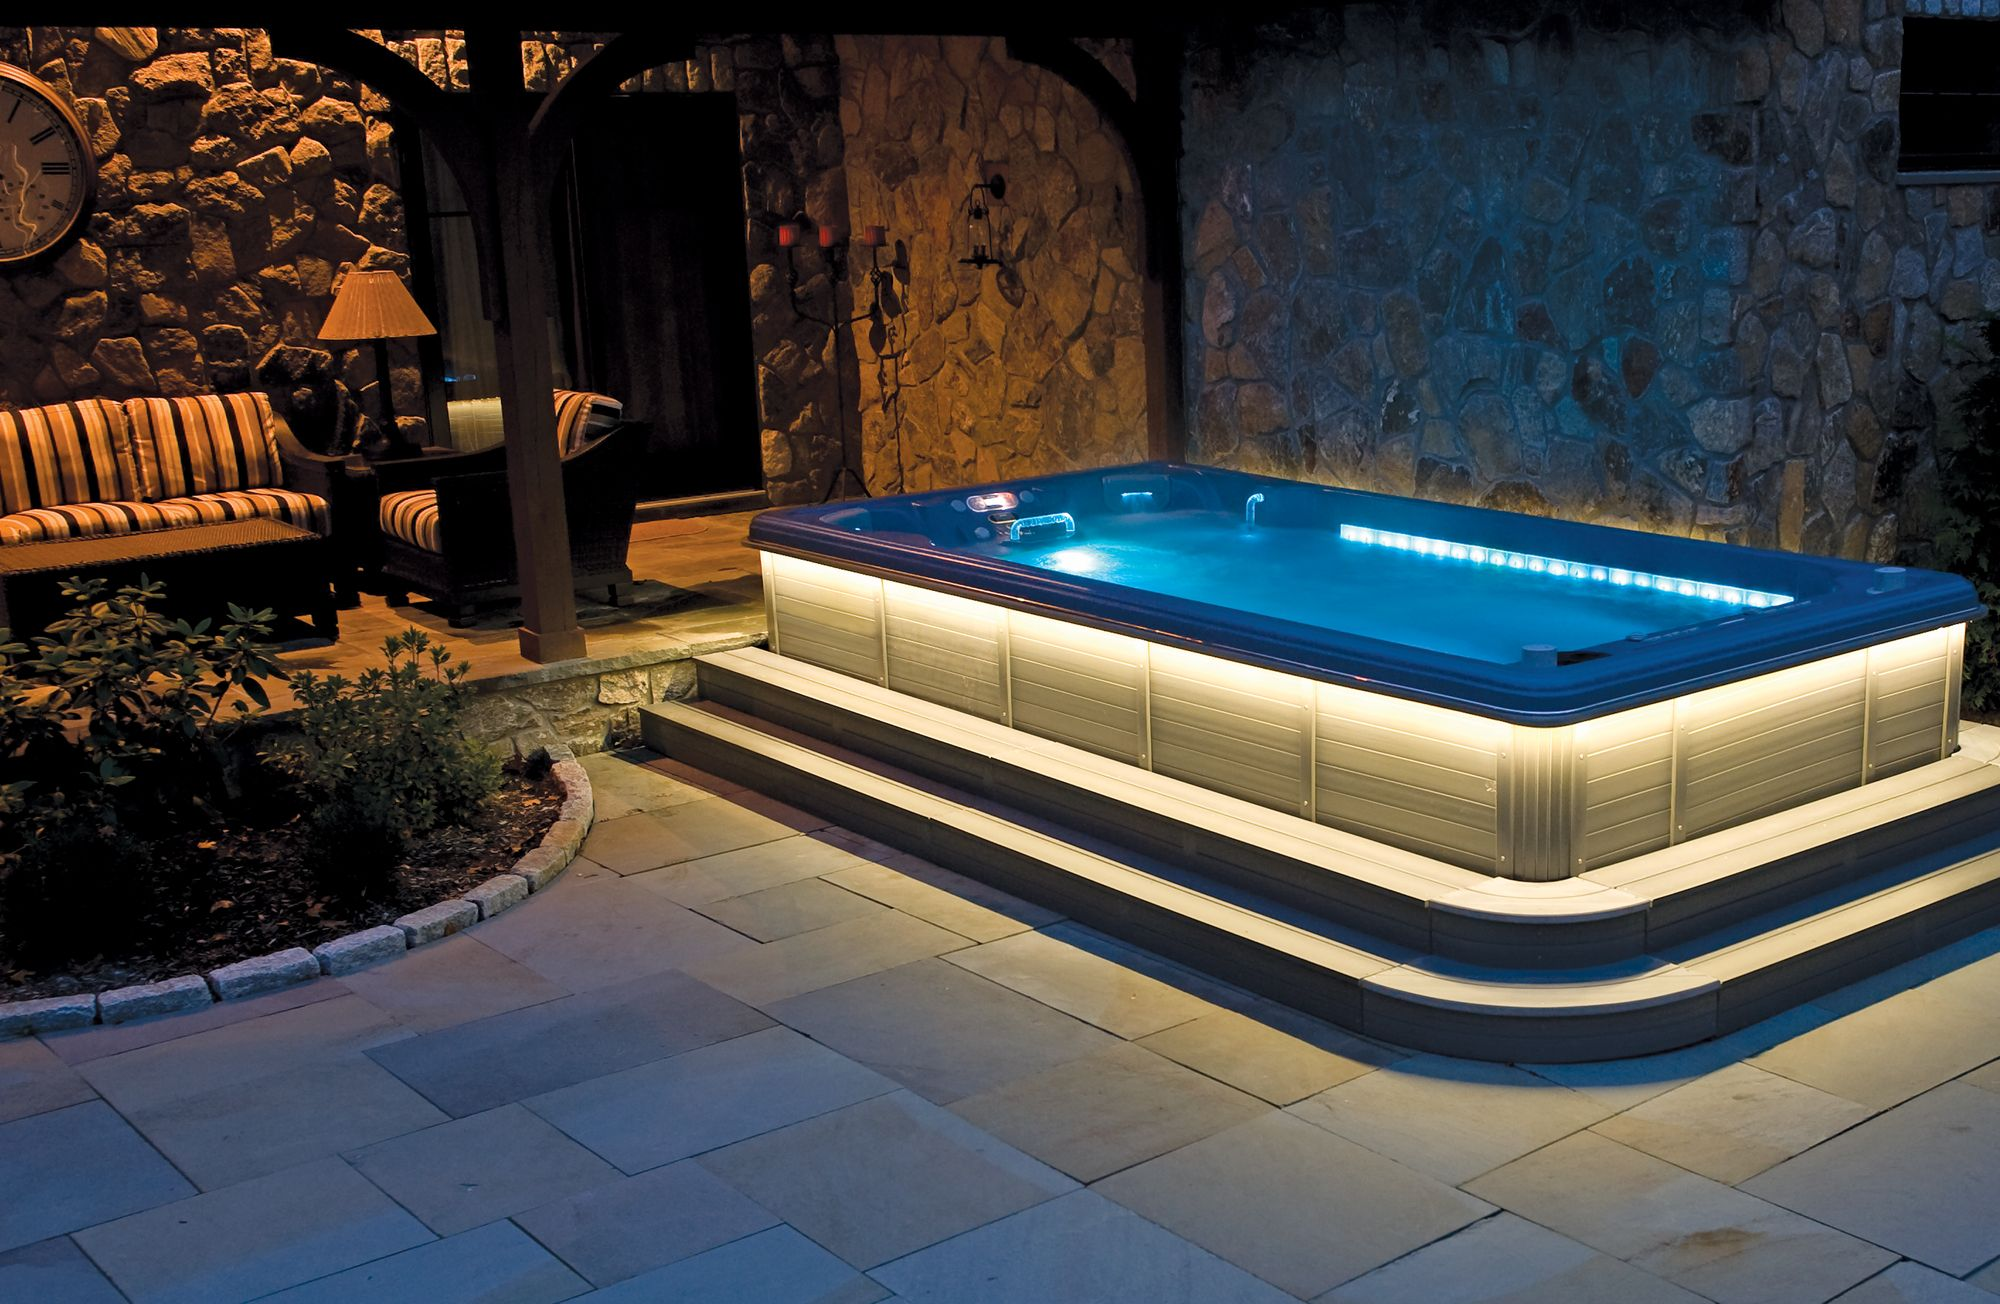 Pin by Laura AnnaMR on Outdoor in 2019 | Swimming pools ...